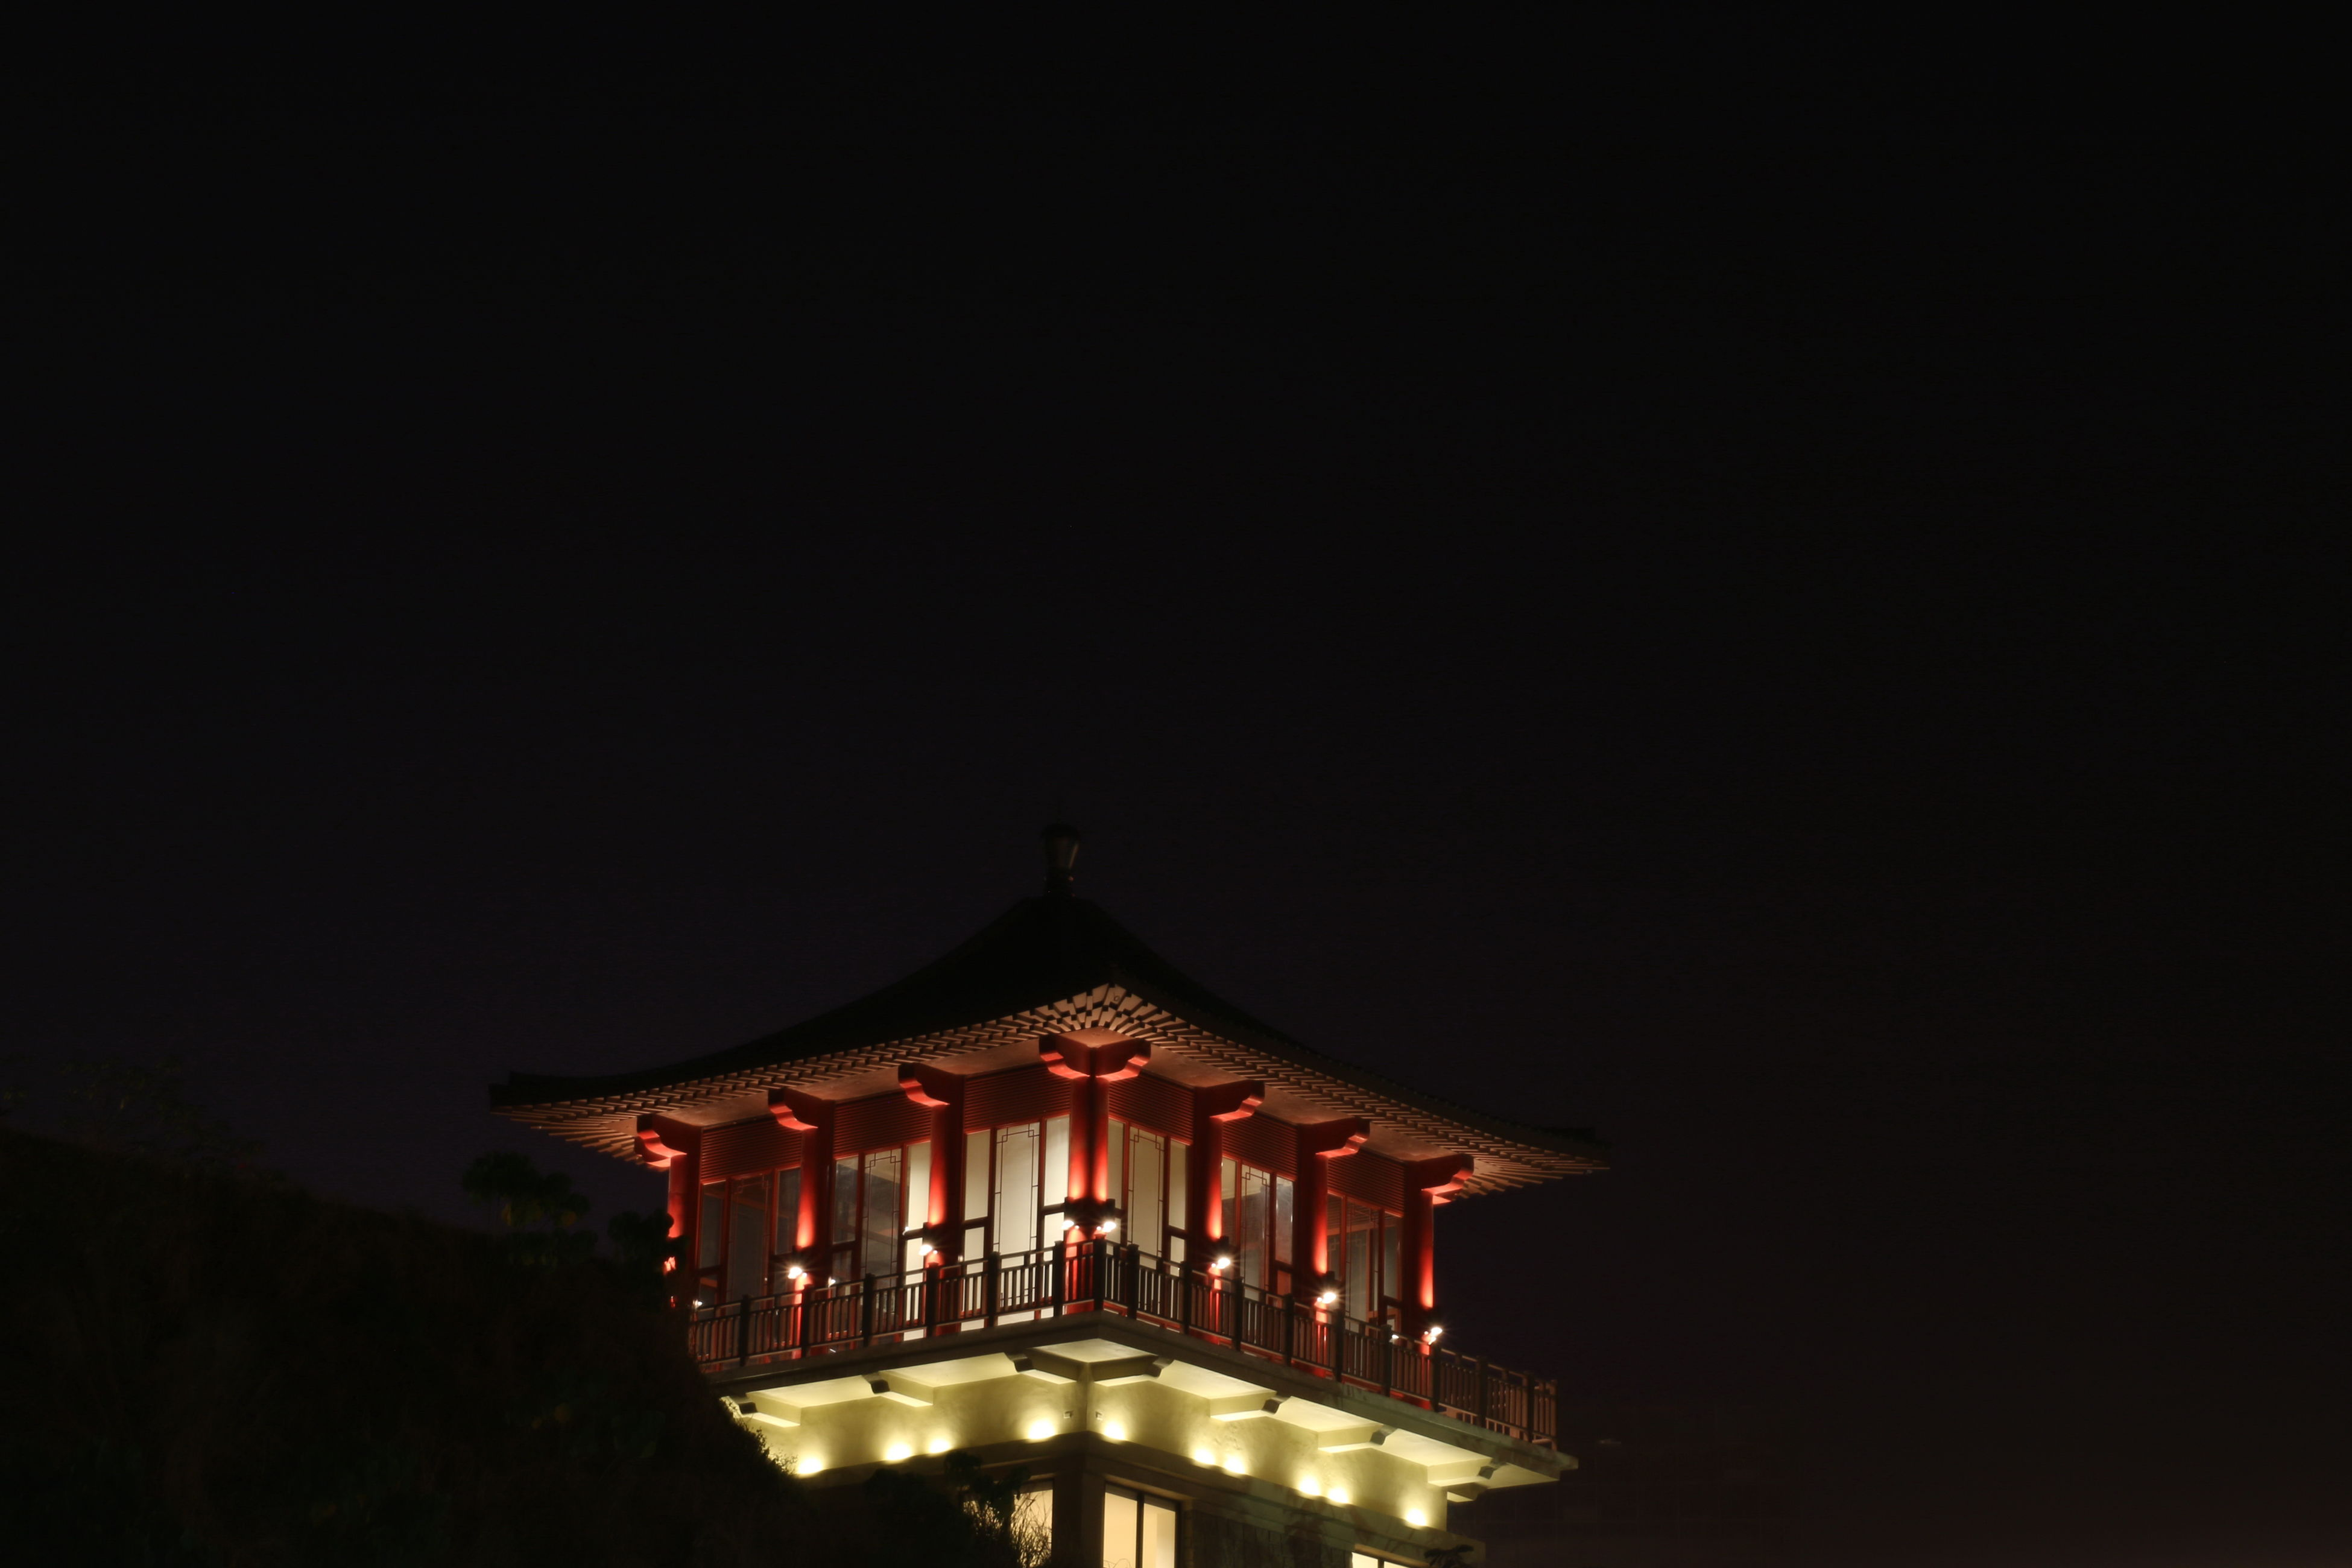 architecture, built structure, building exterior, low angle view, place of worship, copy space, religion, clear sky, spirituality, night, temple - building, illuminated, history, sky, high section, outdoors, no people, tradition, building